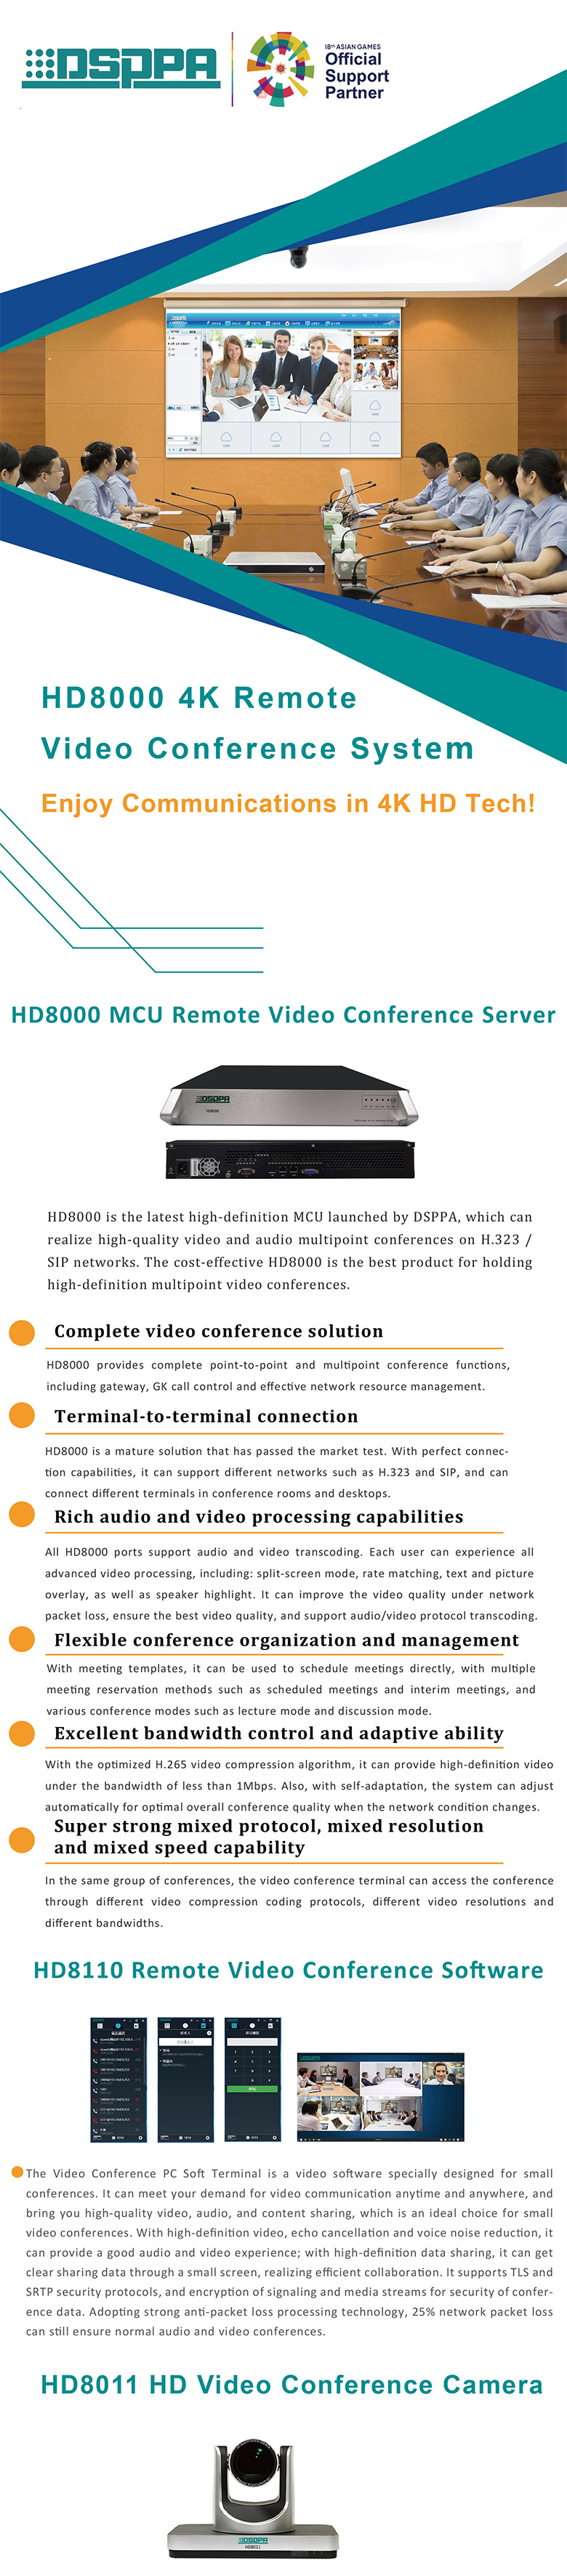 HD8000 4K Remote HD Video Conference System